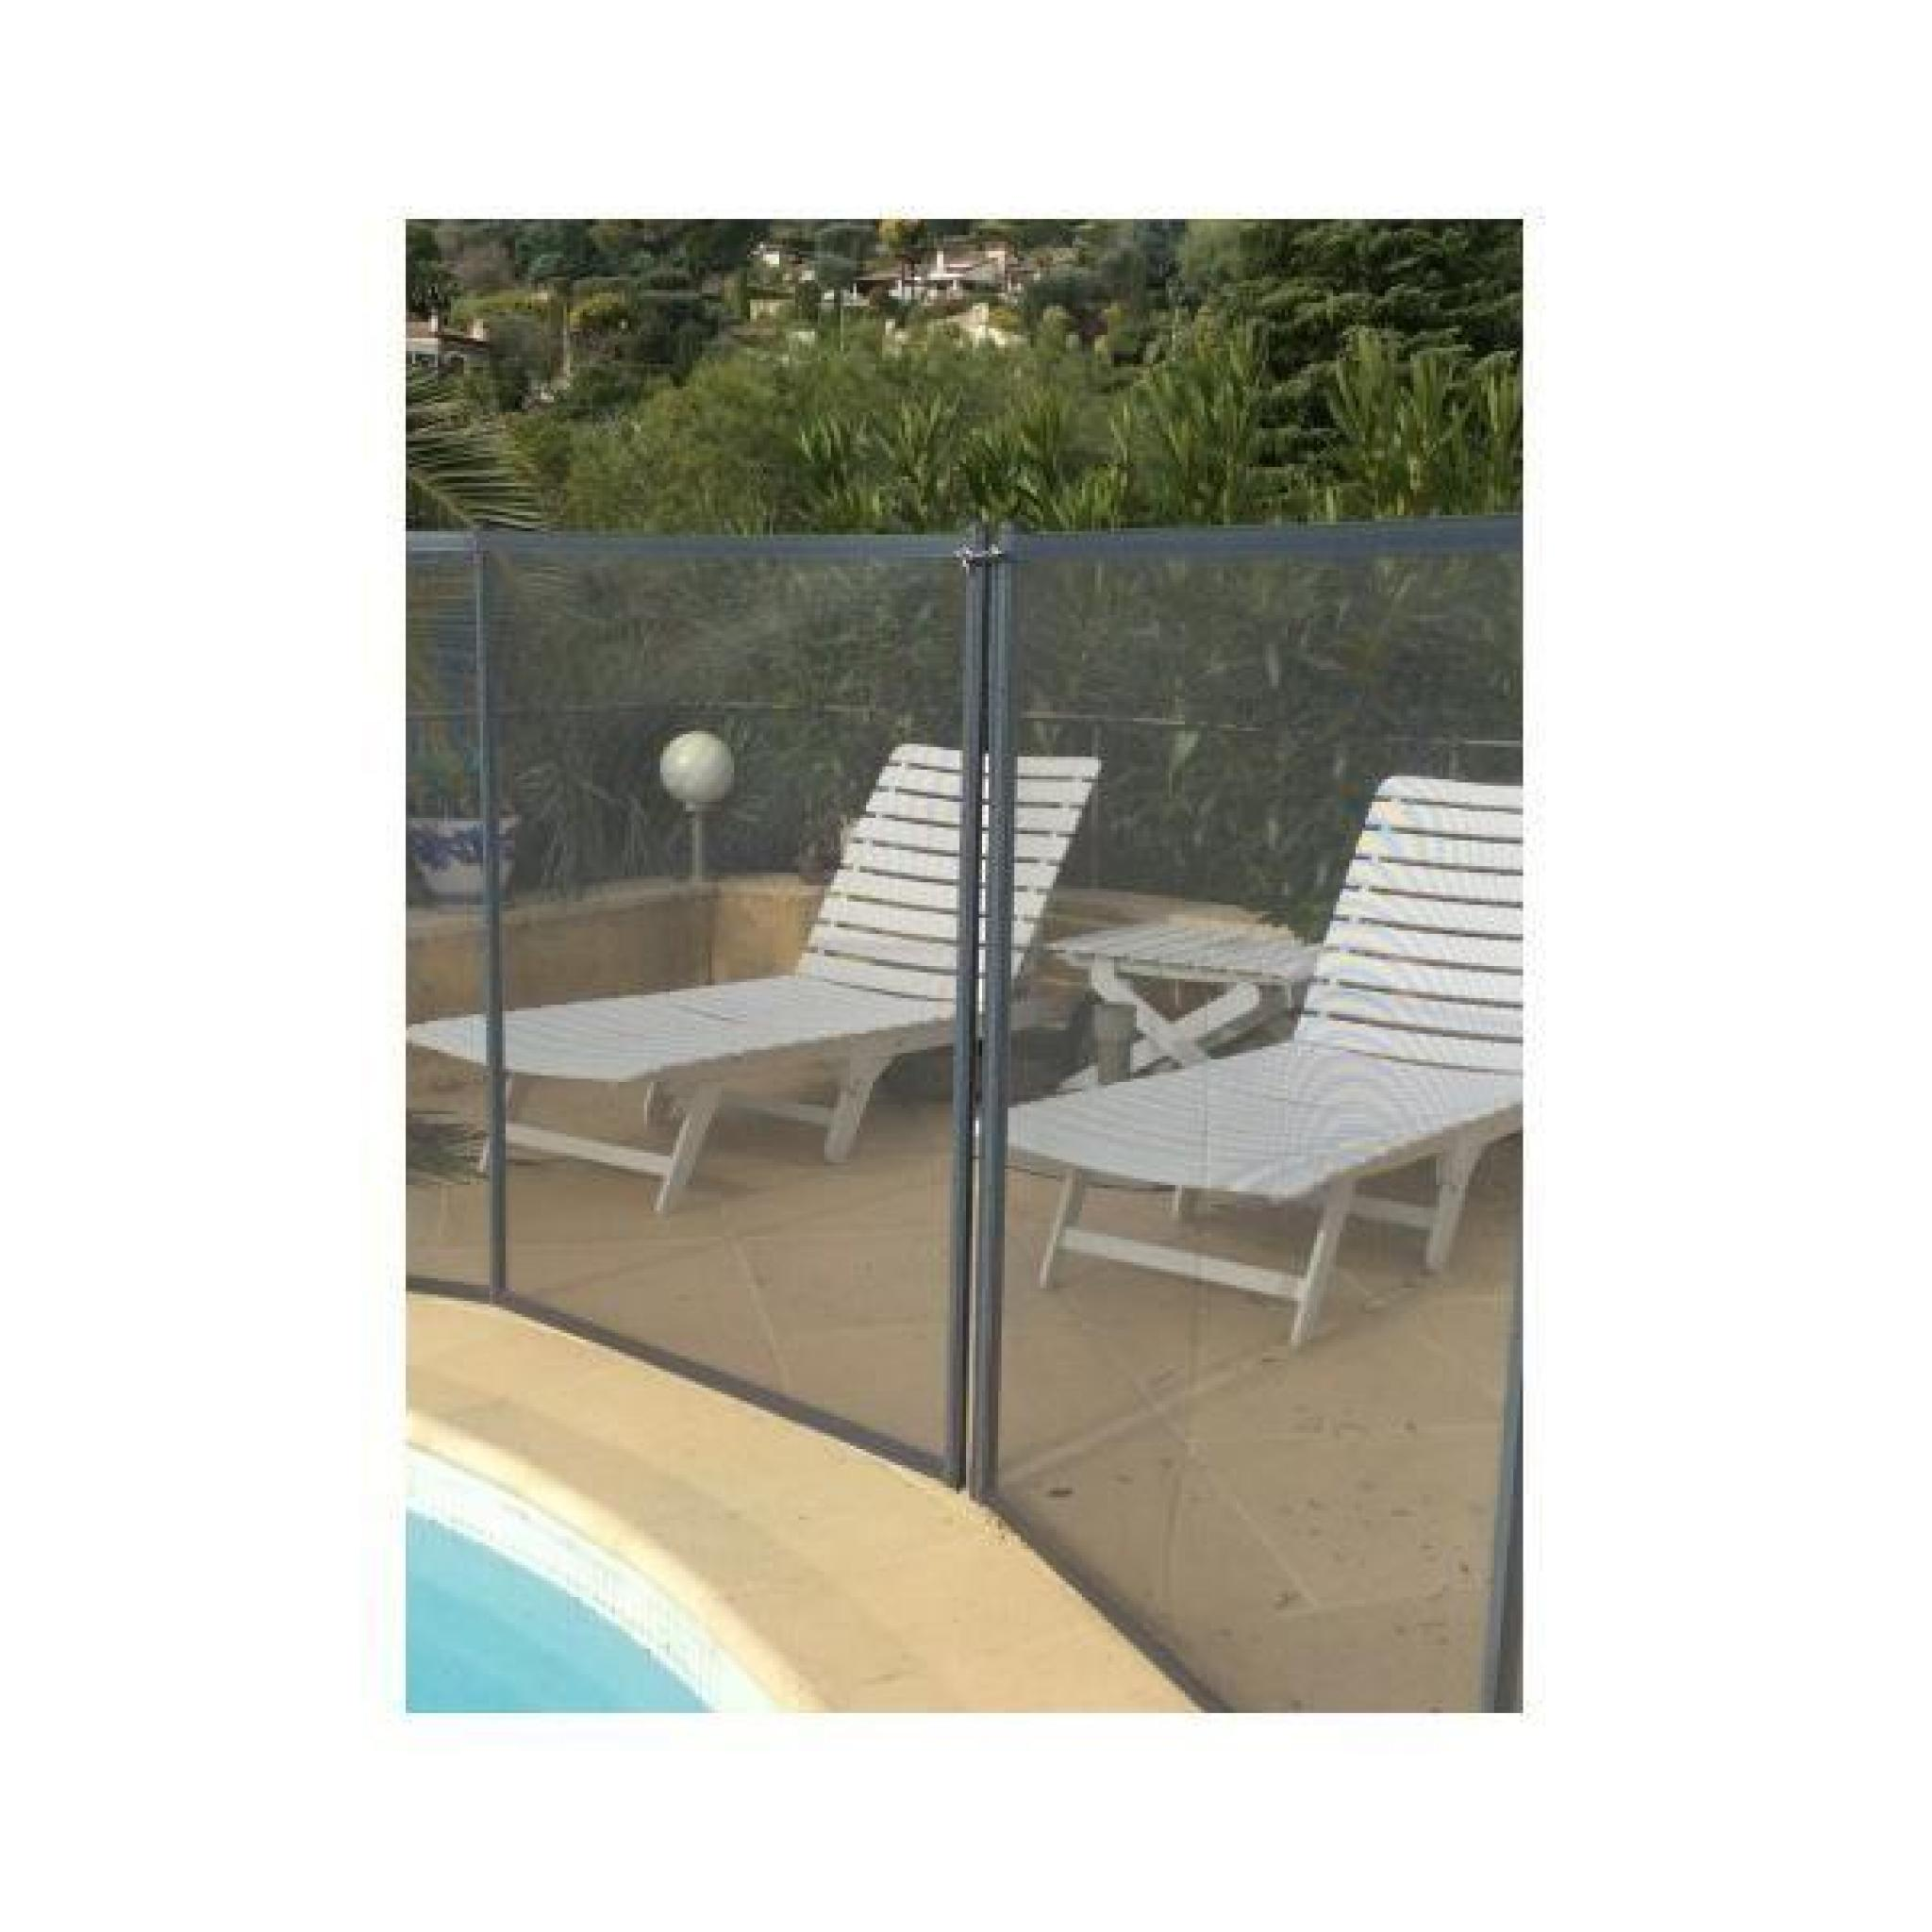 barriere de piscine beethoven prestige grise avec piquets gris 8 m tres achat vente securite. Black Bedroom Furniture Sets. Home Design Ideas